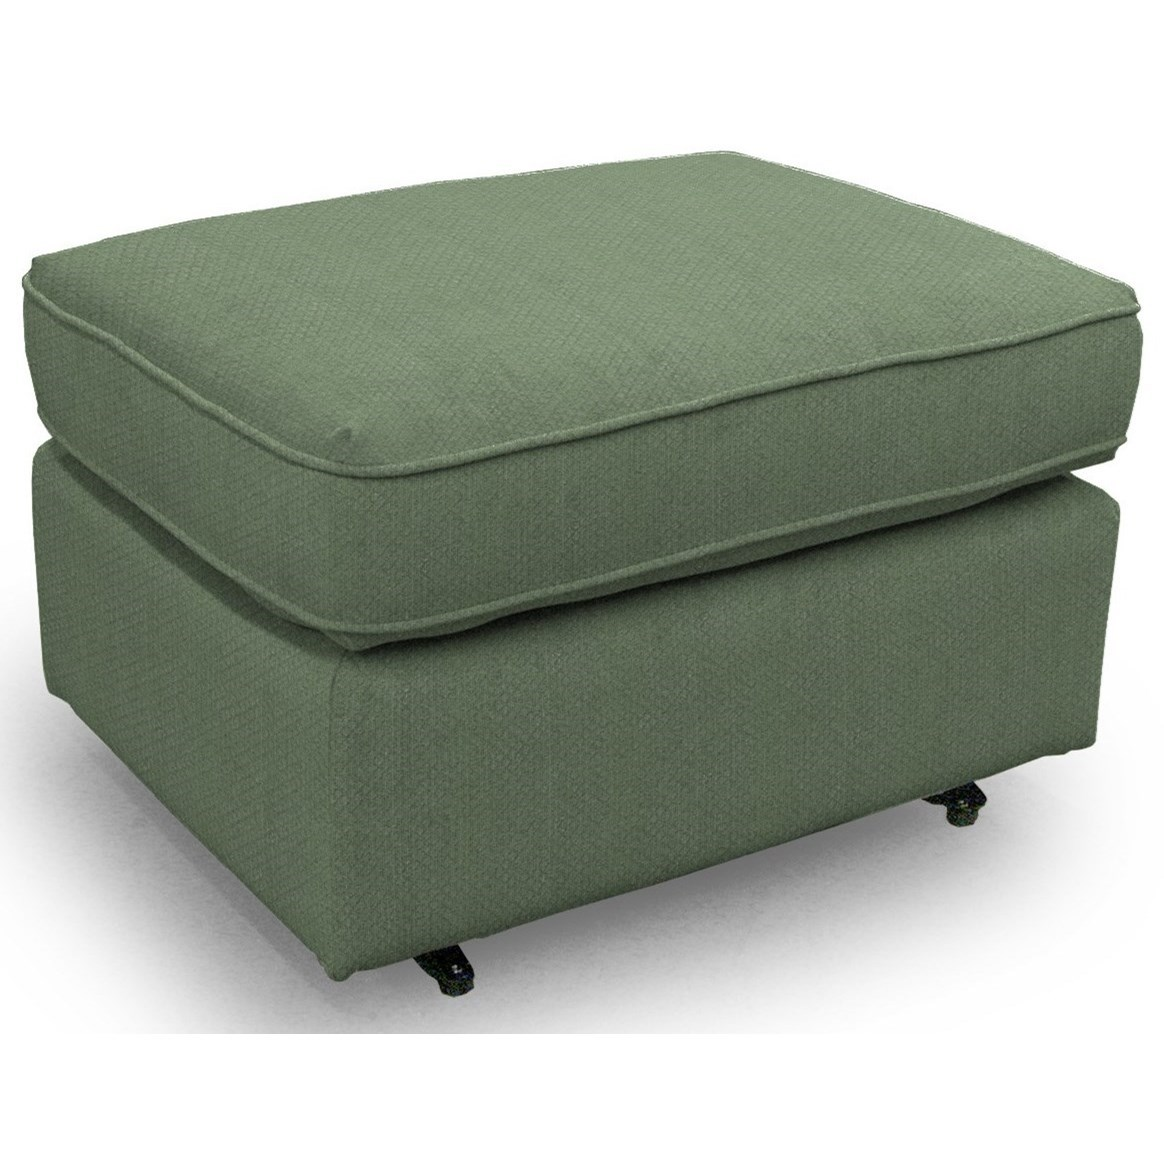 Ottomans Rounded Casual Ottoman by Best Home Furnishings at Pilgrim Furniture City